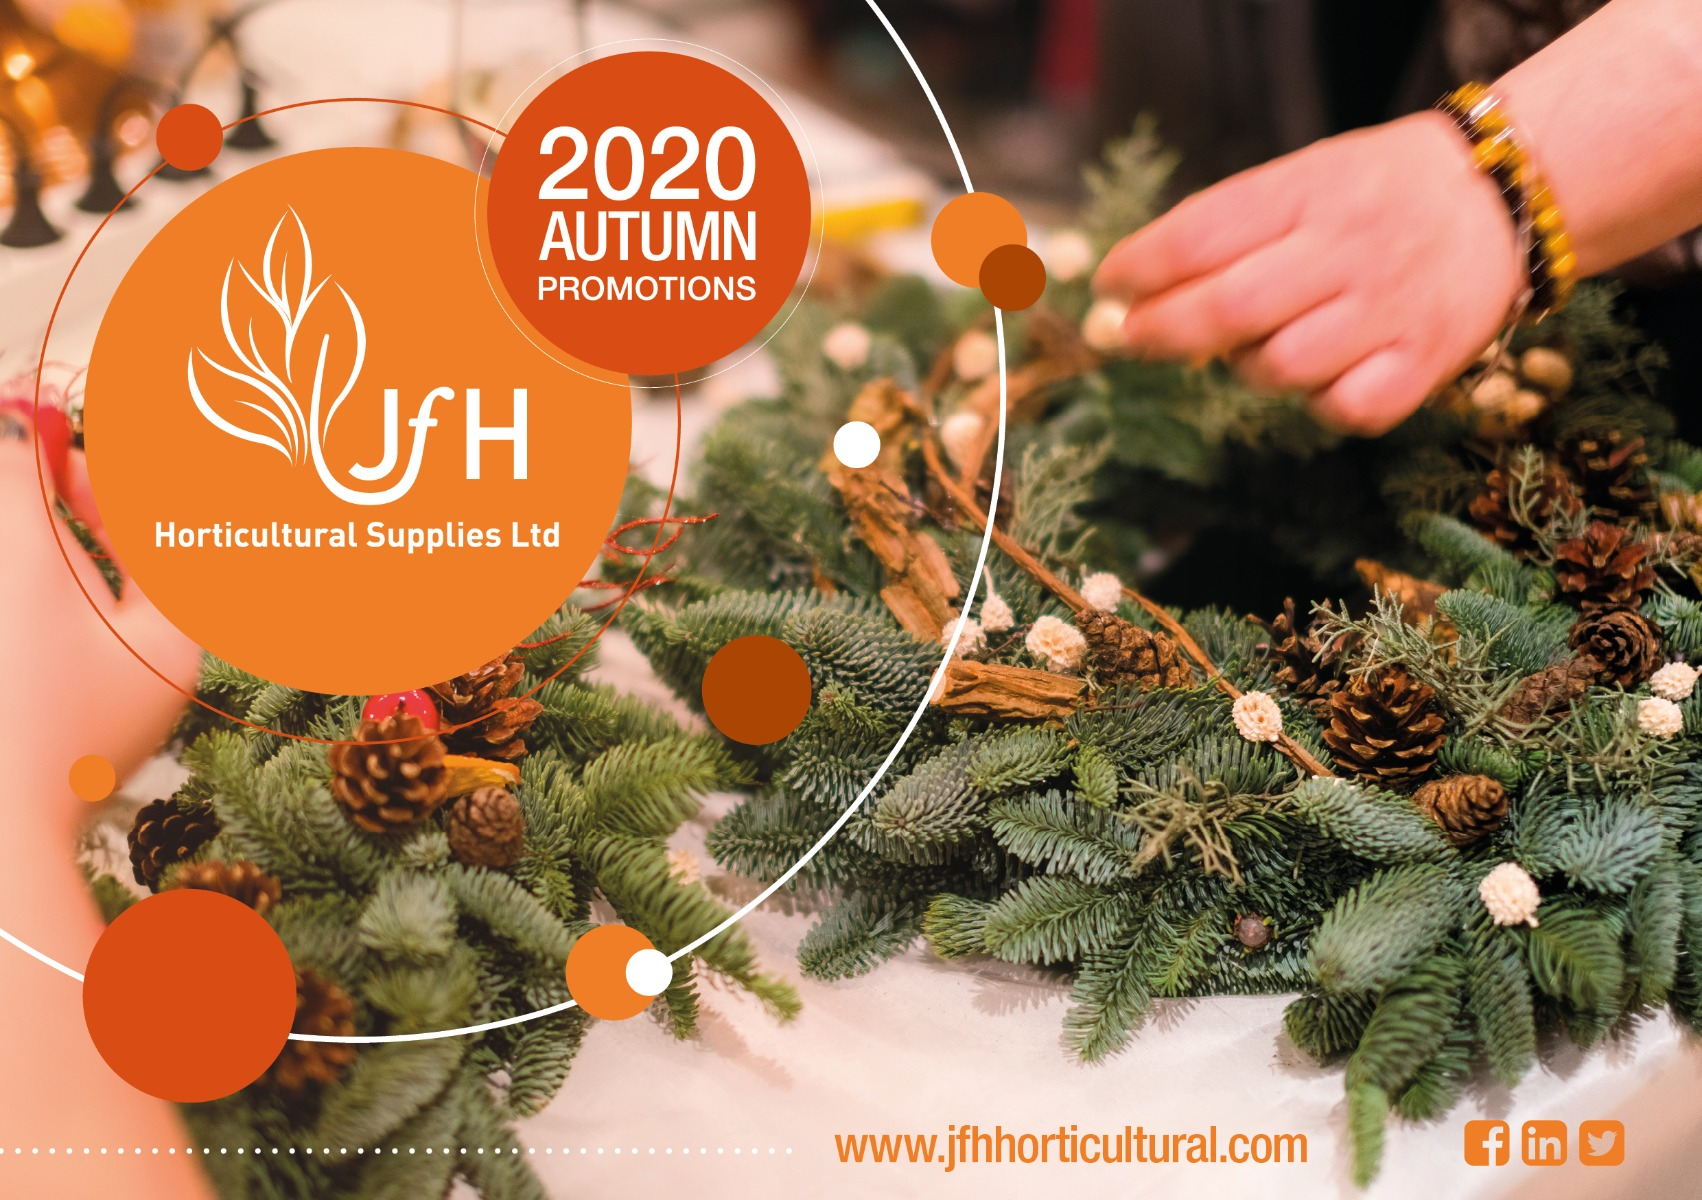 2020 Seasonal Promotions Brochure Out Now